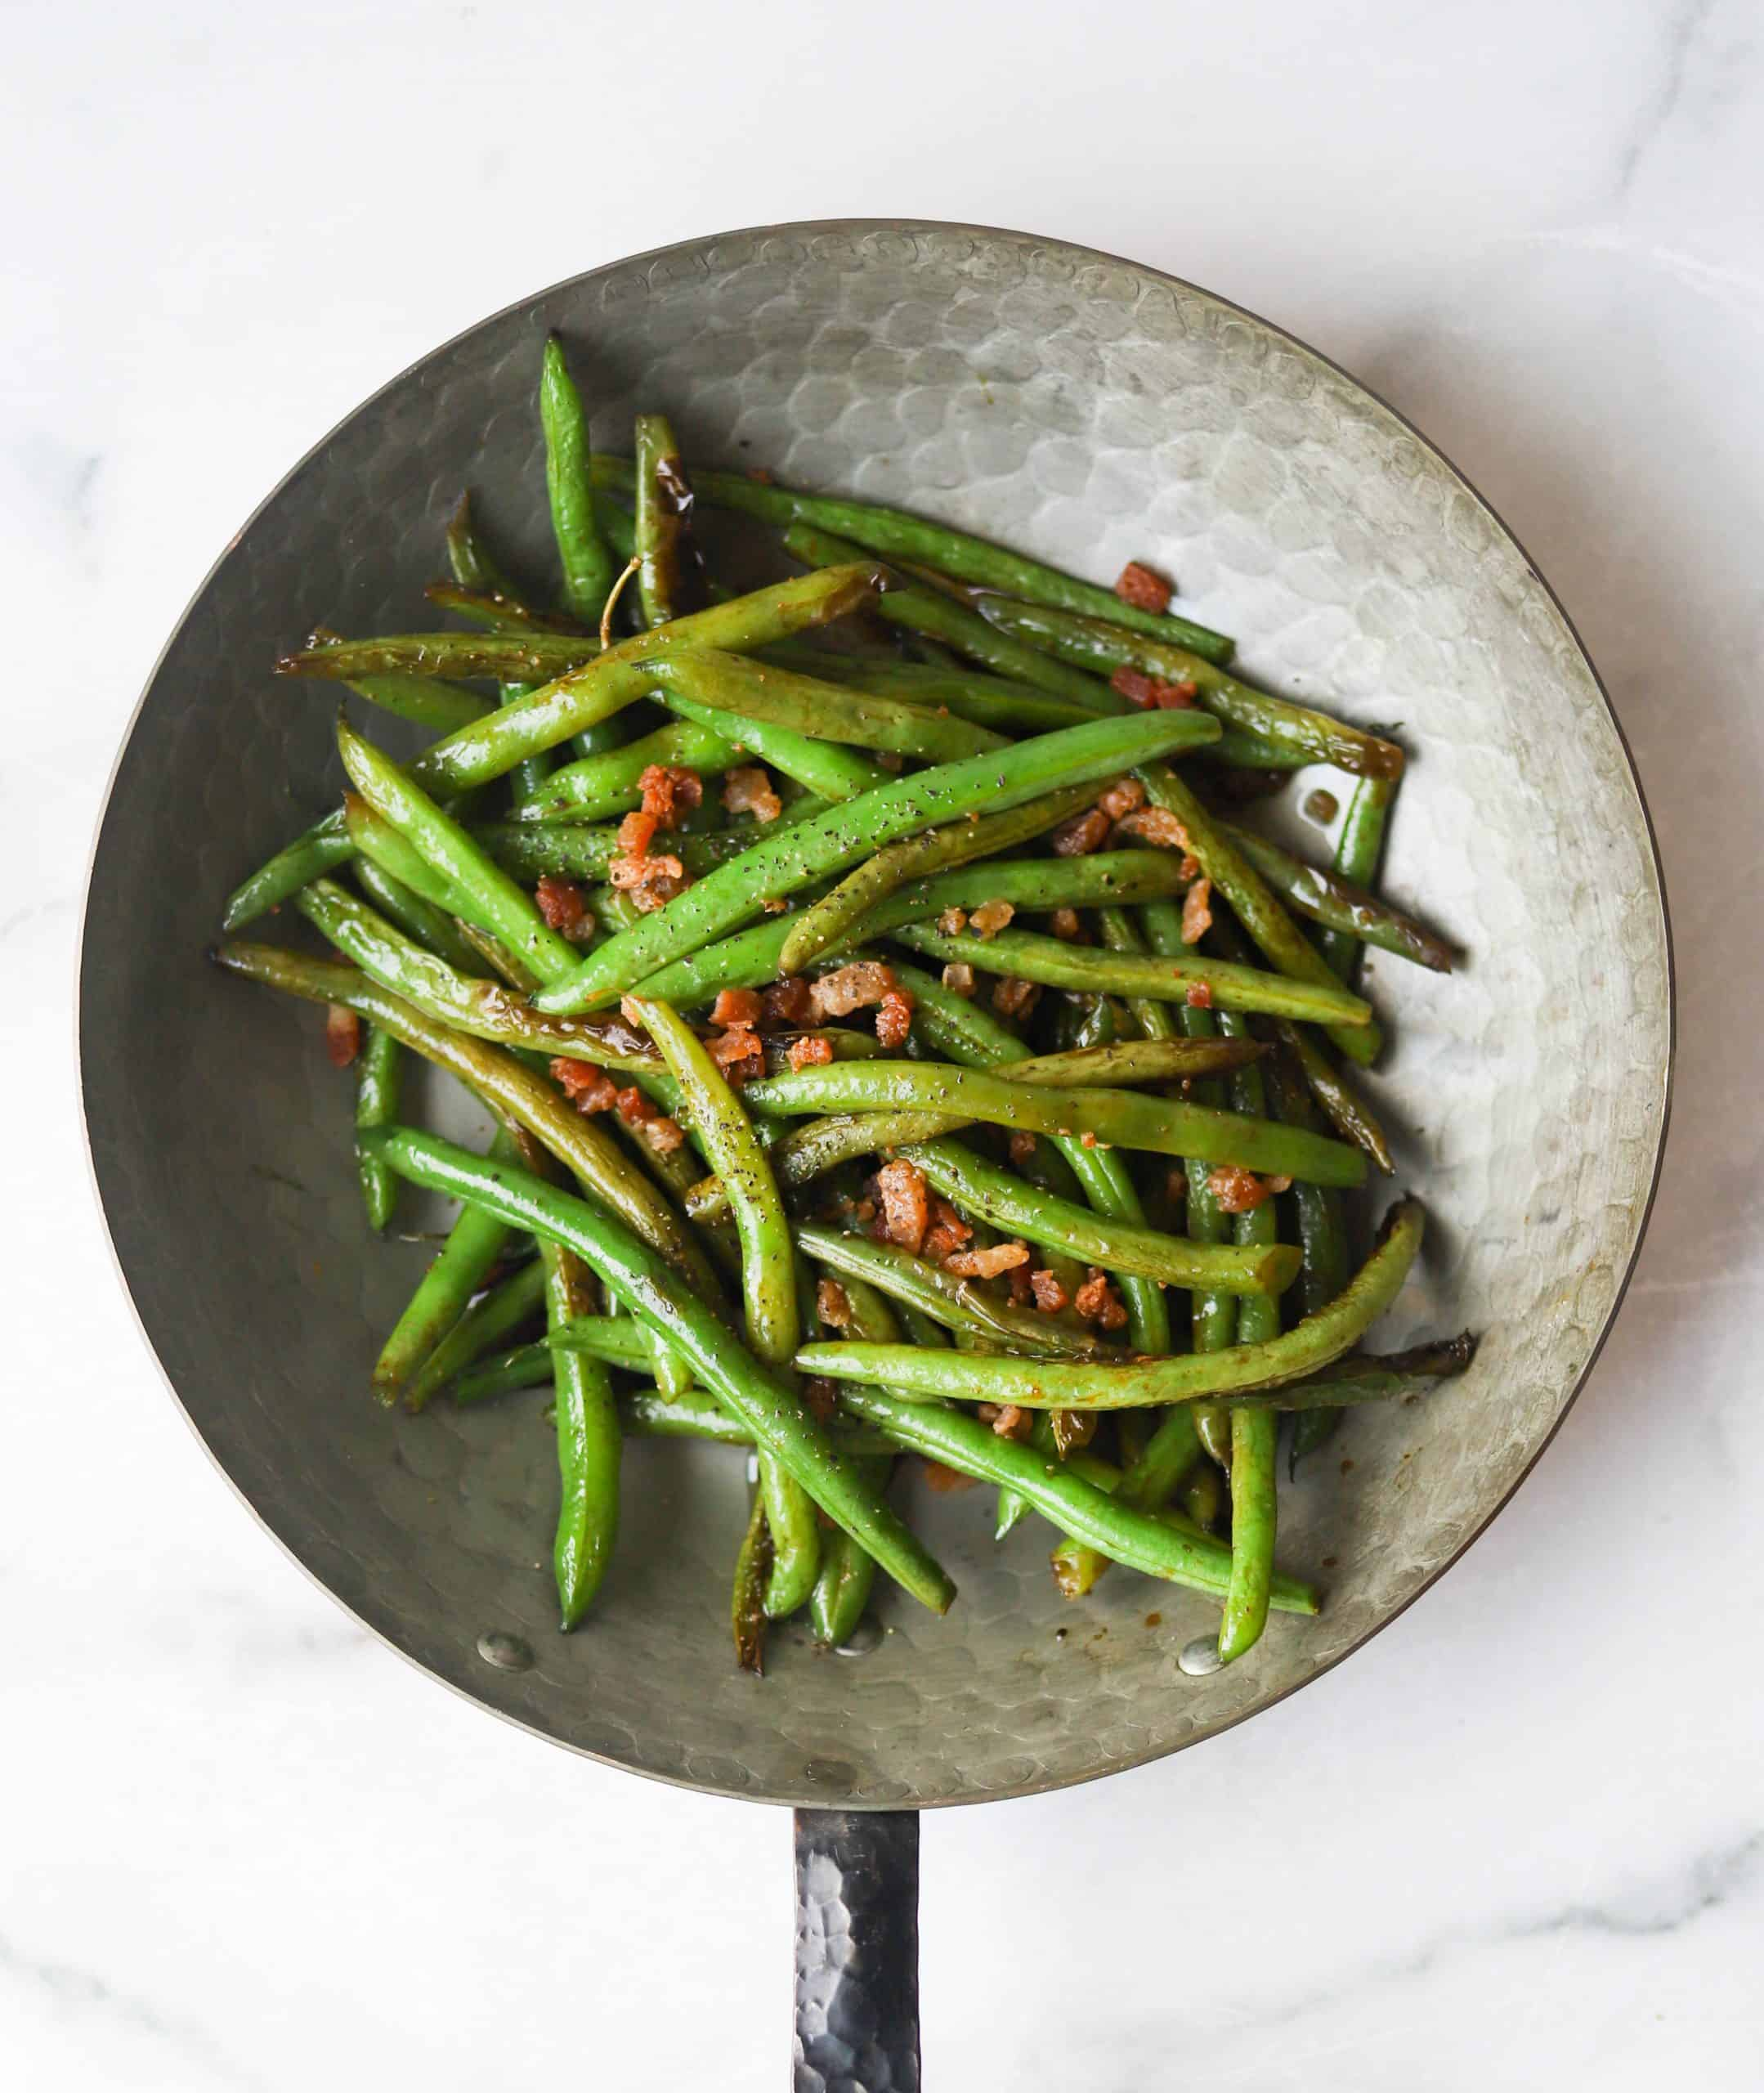 Bacon green beans in a copper pan